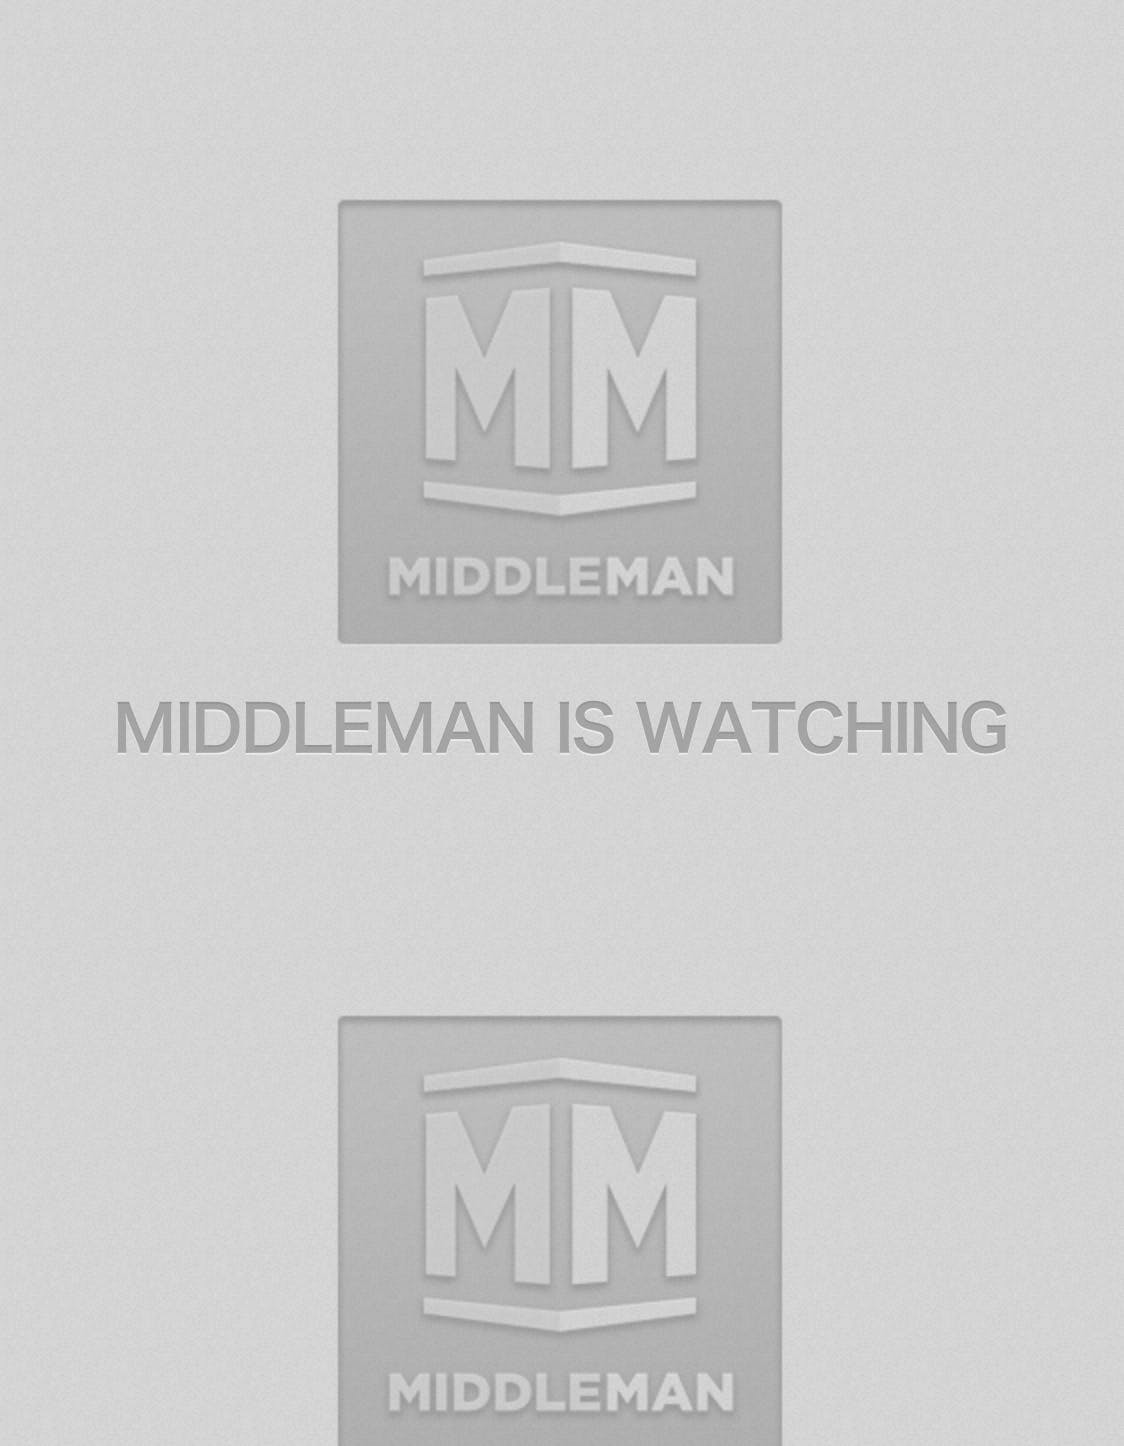 MiddleMan is watching